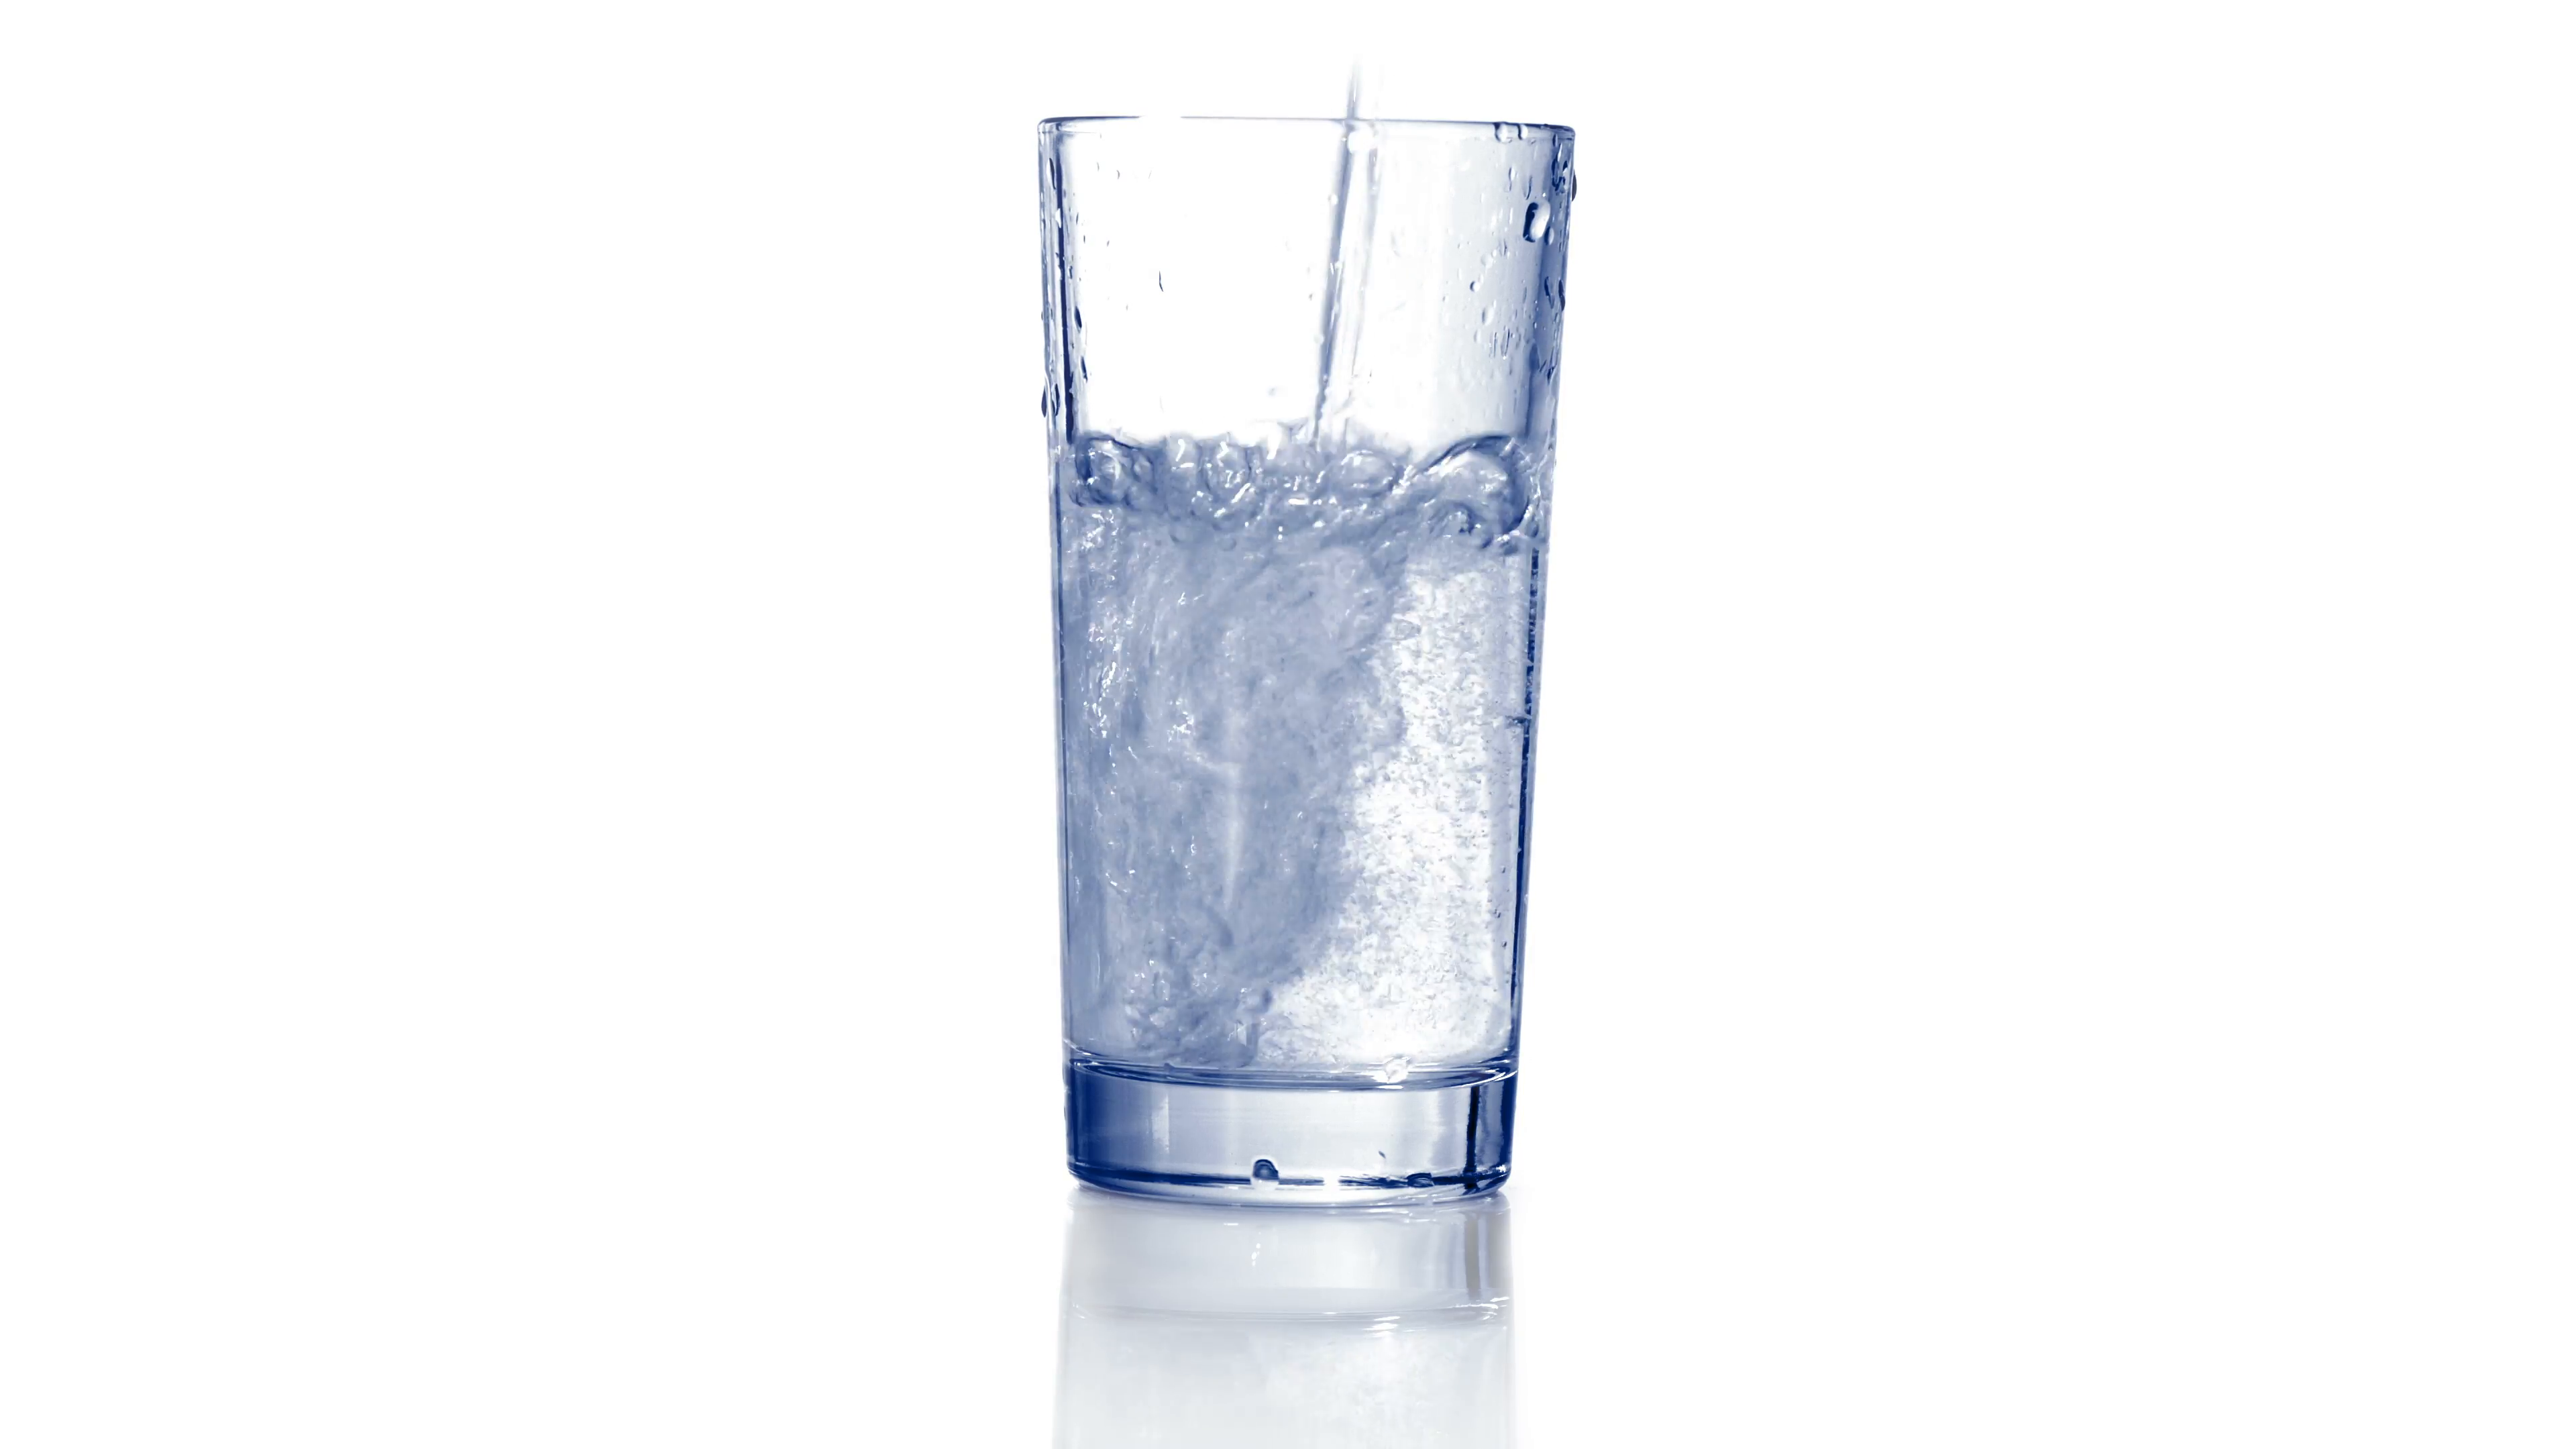 Filling empty glass with carbonated water, dropping ice cubes. Bubbles come  out. Close up, extreme close up. 4K Ultra HD. Stock Video Footage -  VideoBlocks - Ice In Glass PNG